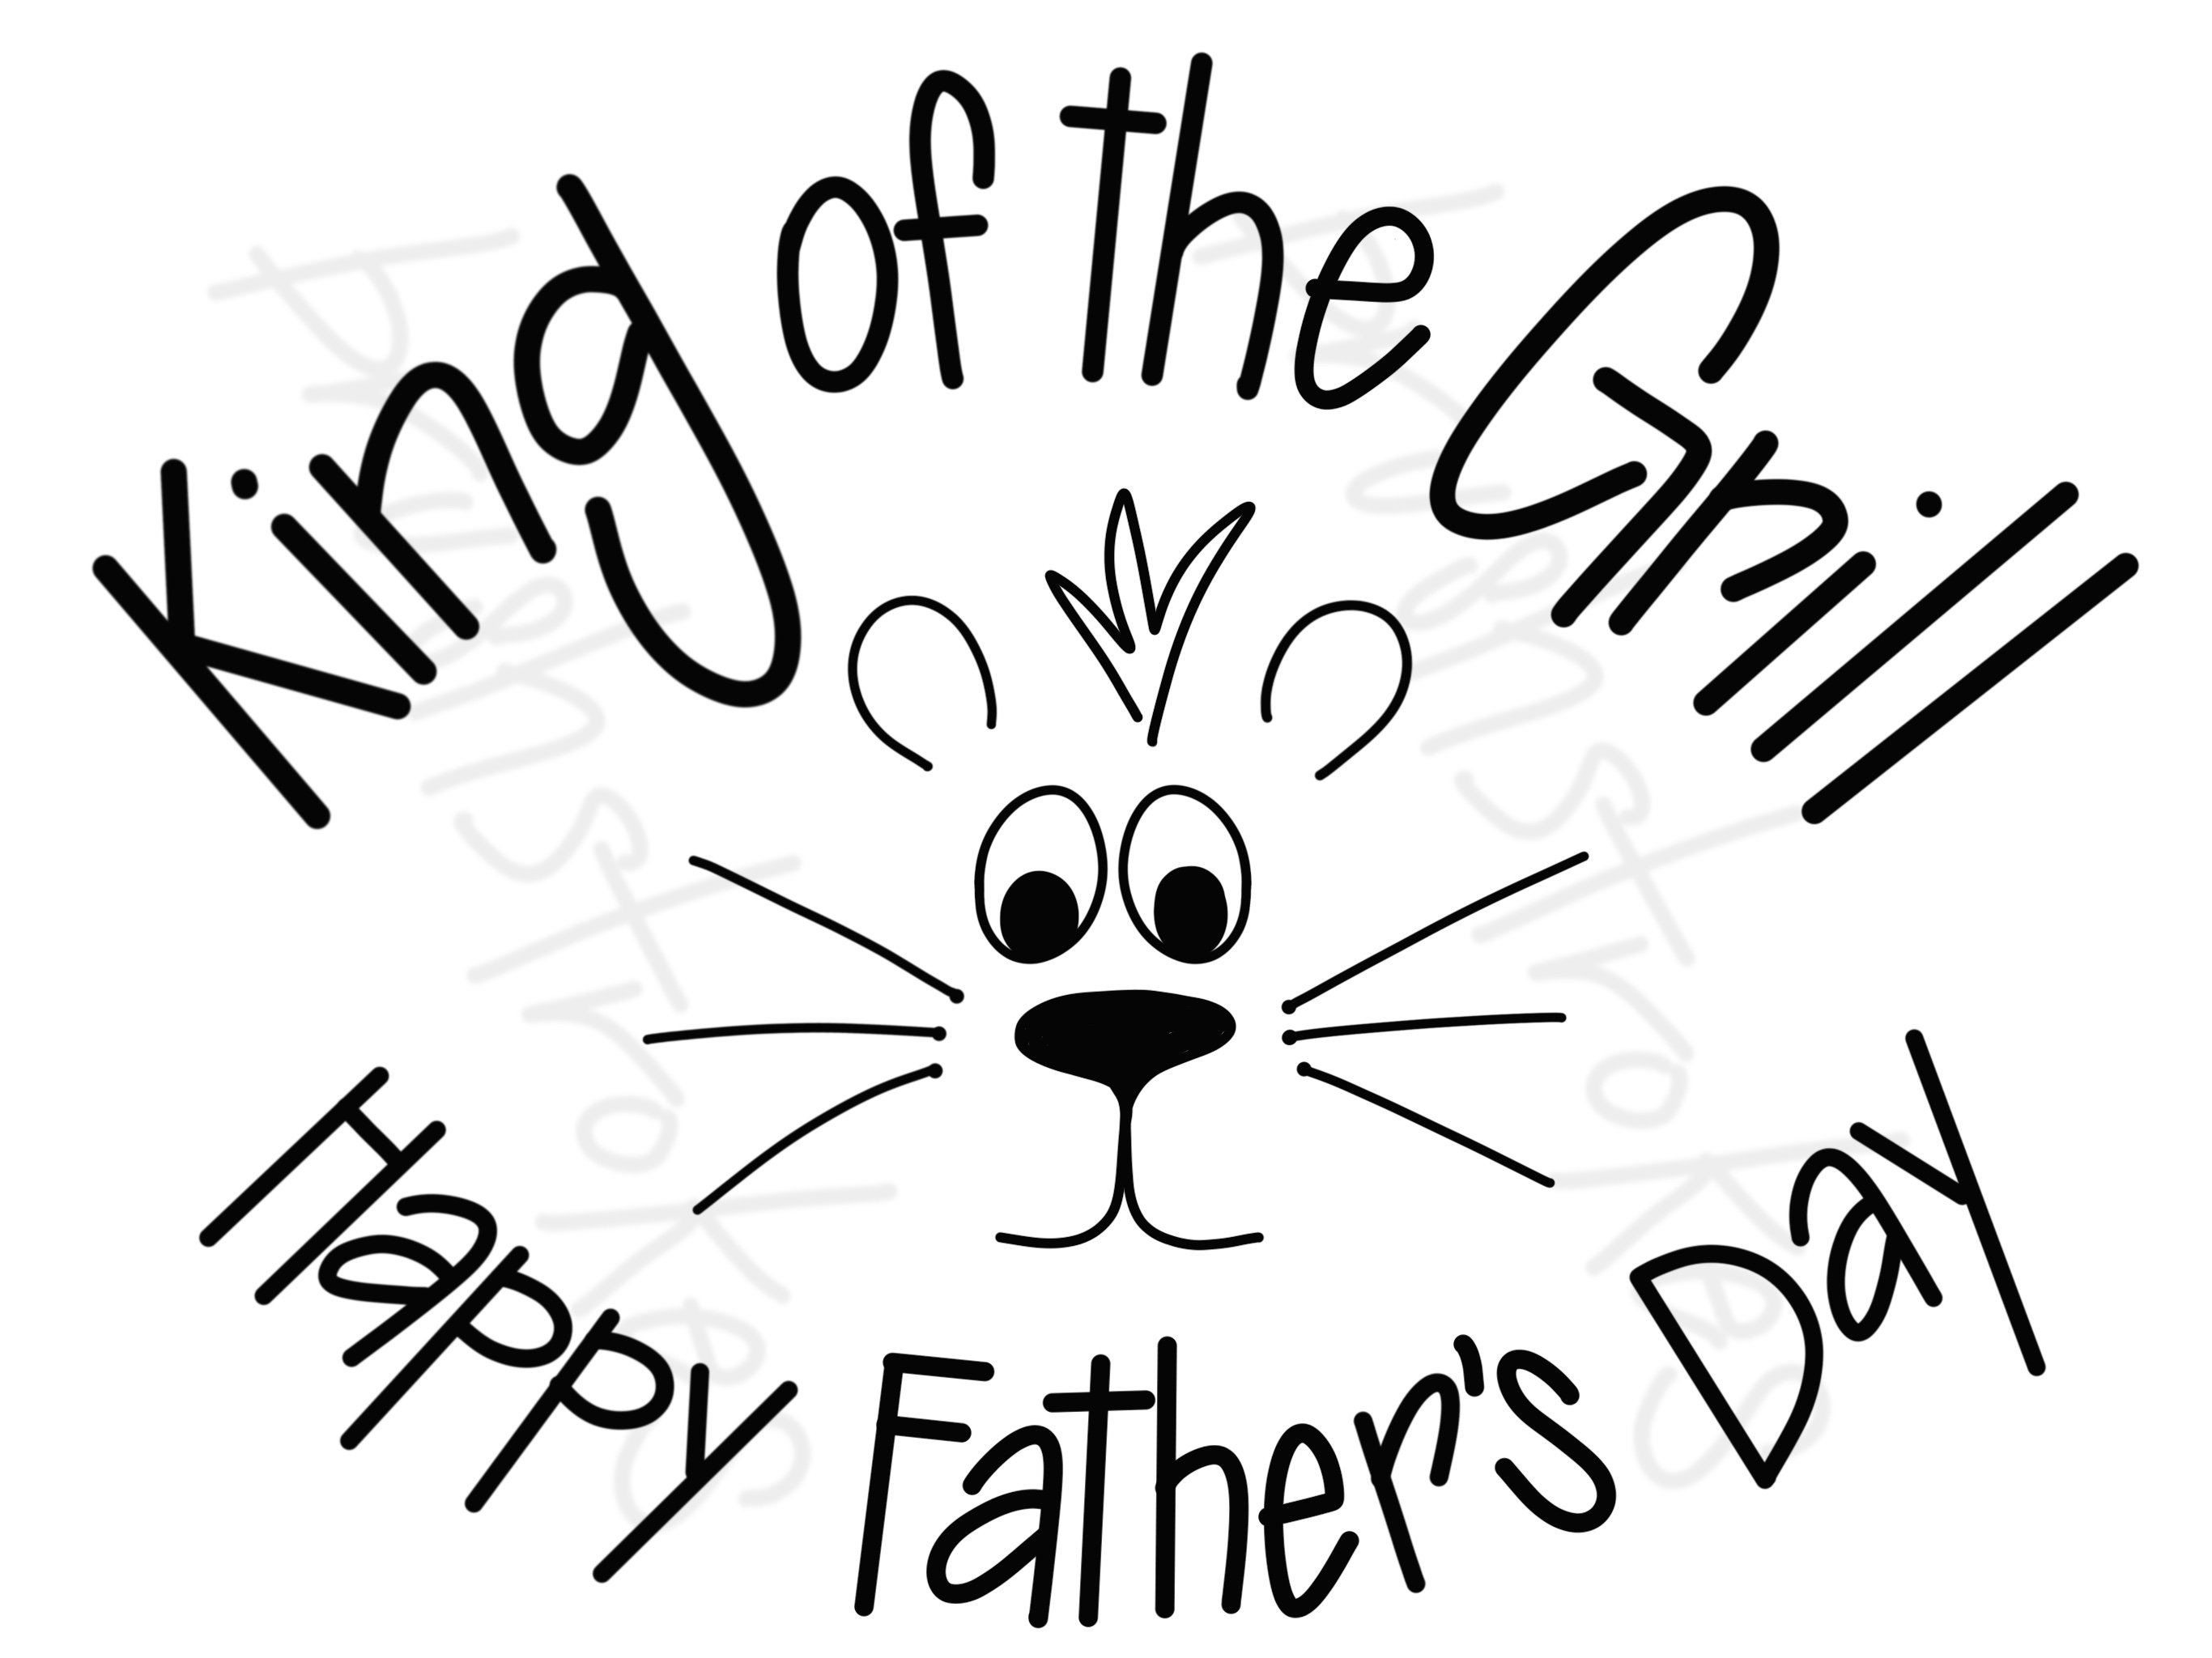 Happy fathers day black and white clipart picture royalty free library King of the Grill - Happy Father\'s Day Silk Screen picture royalty free library